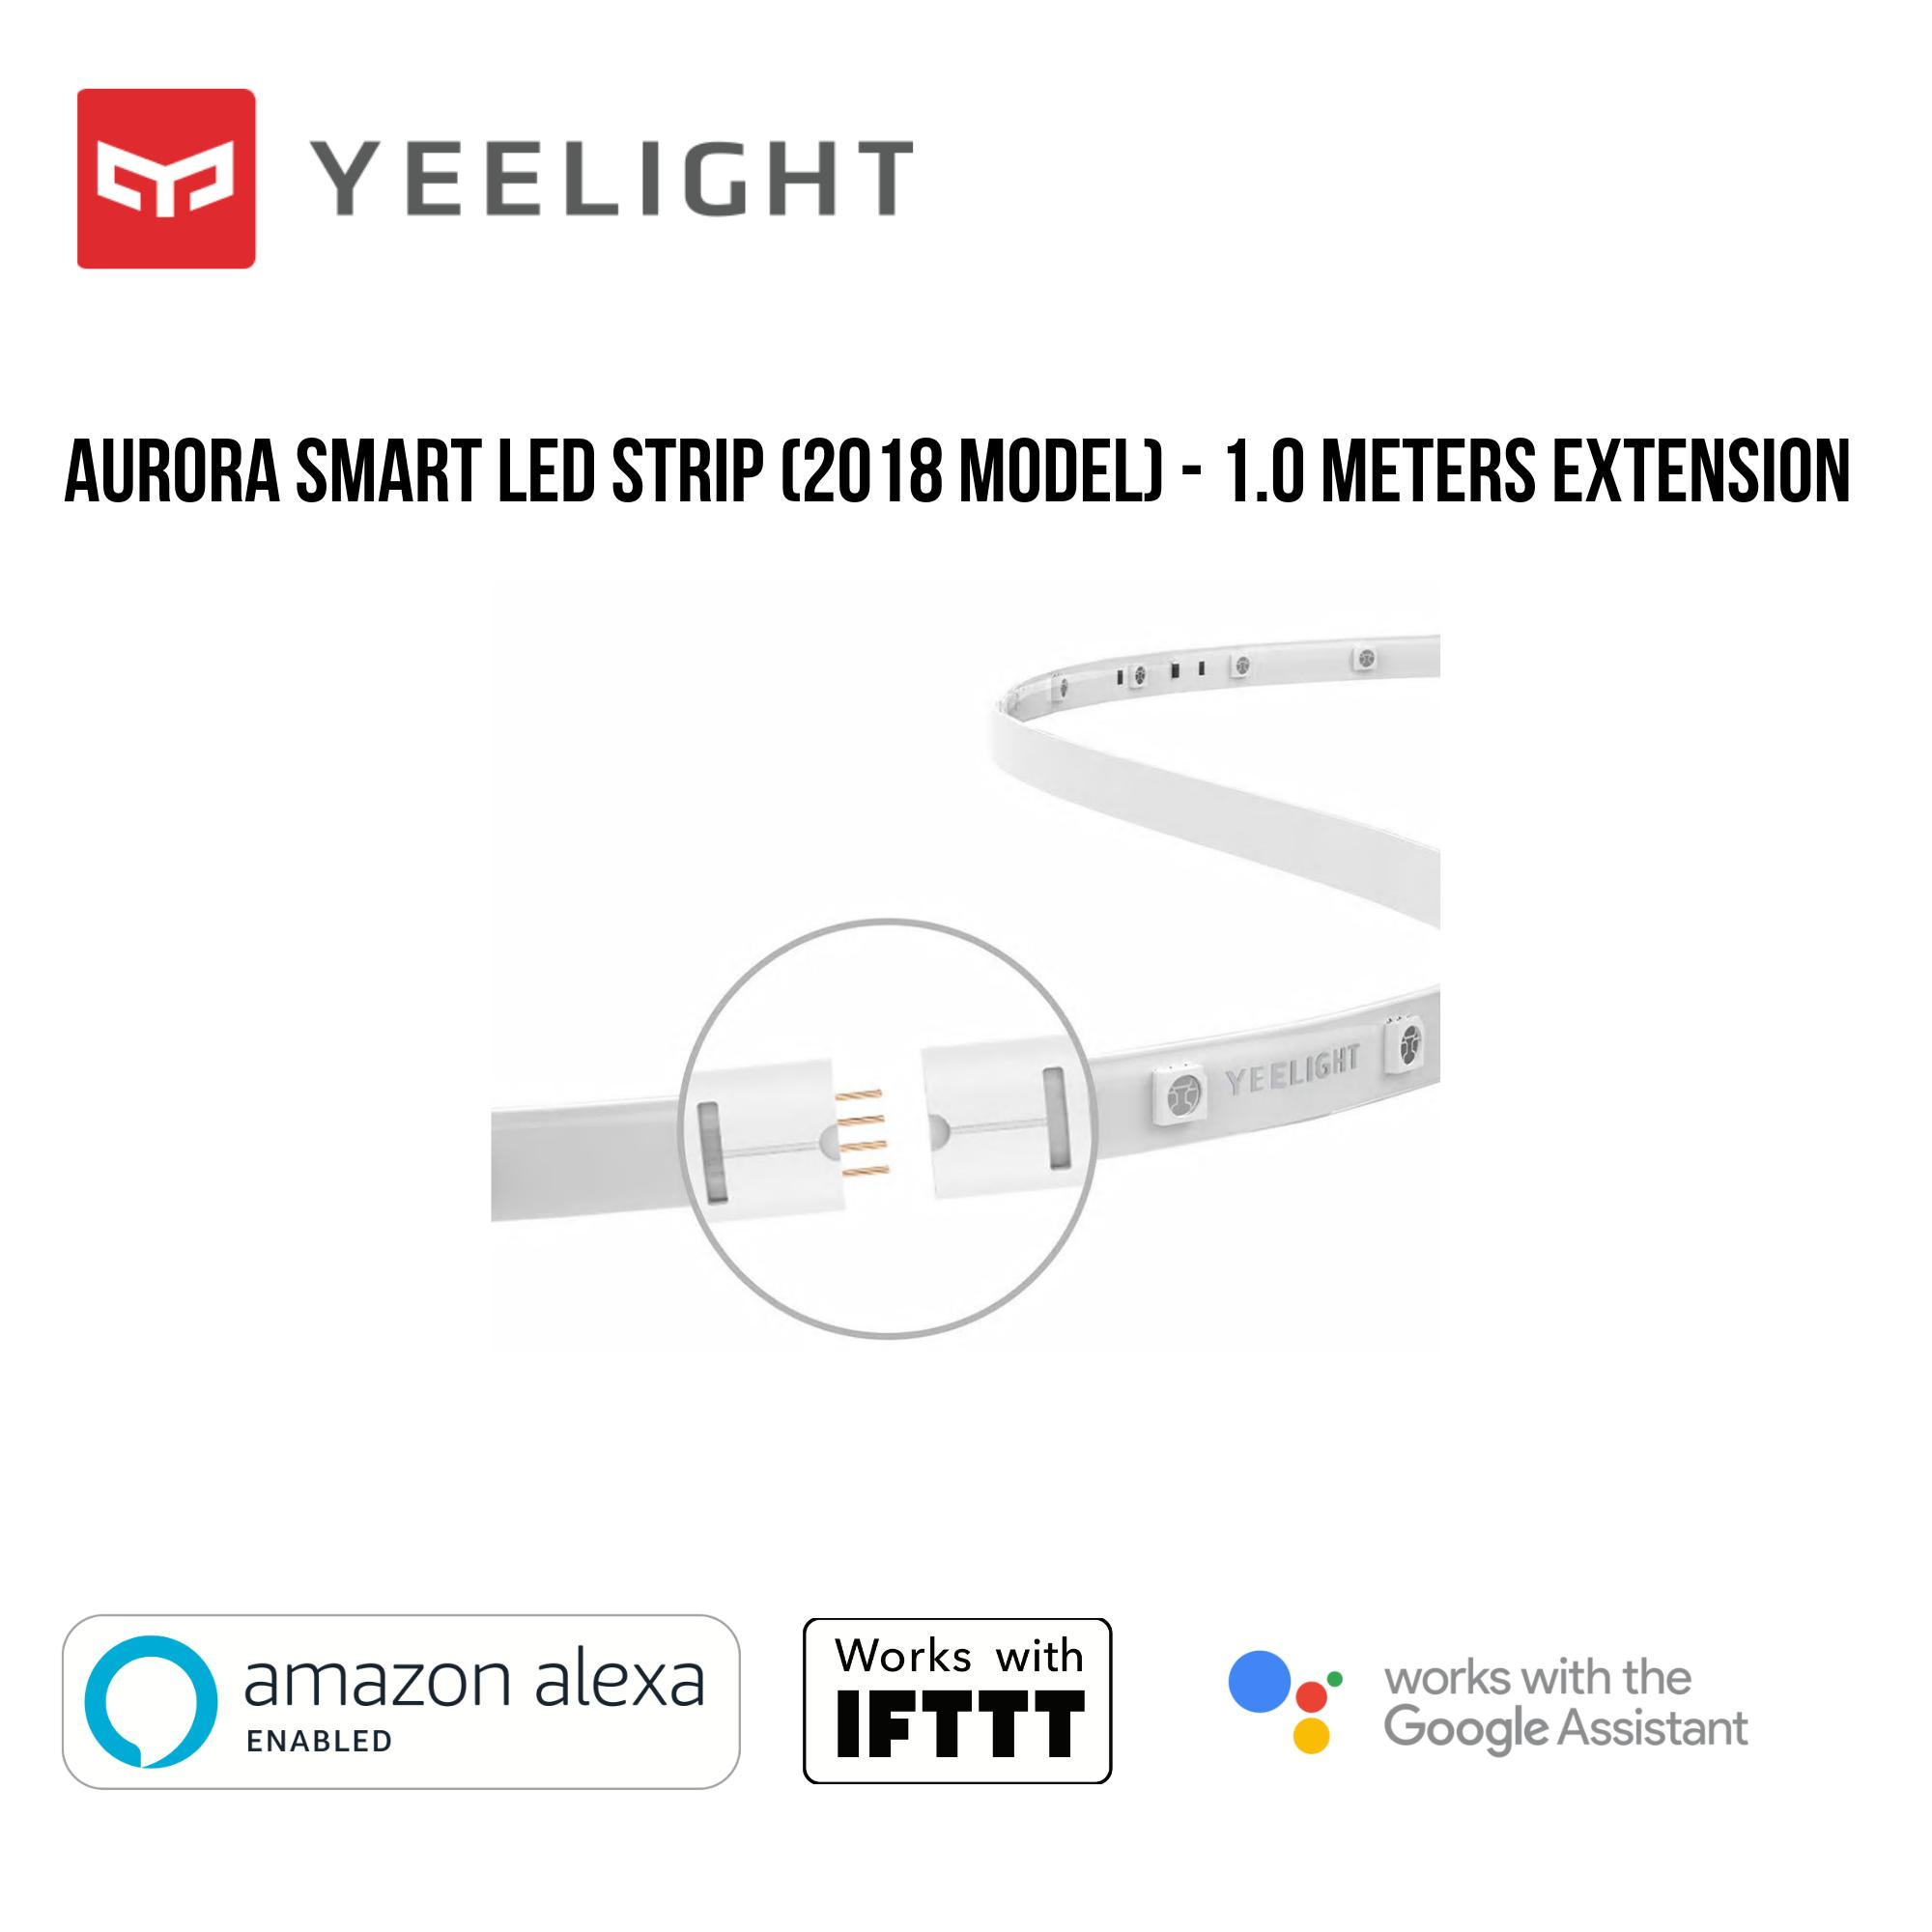 Yeelight Aurora Smart LED Lightstrip Extension - 1.0 Meters Singapore